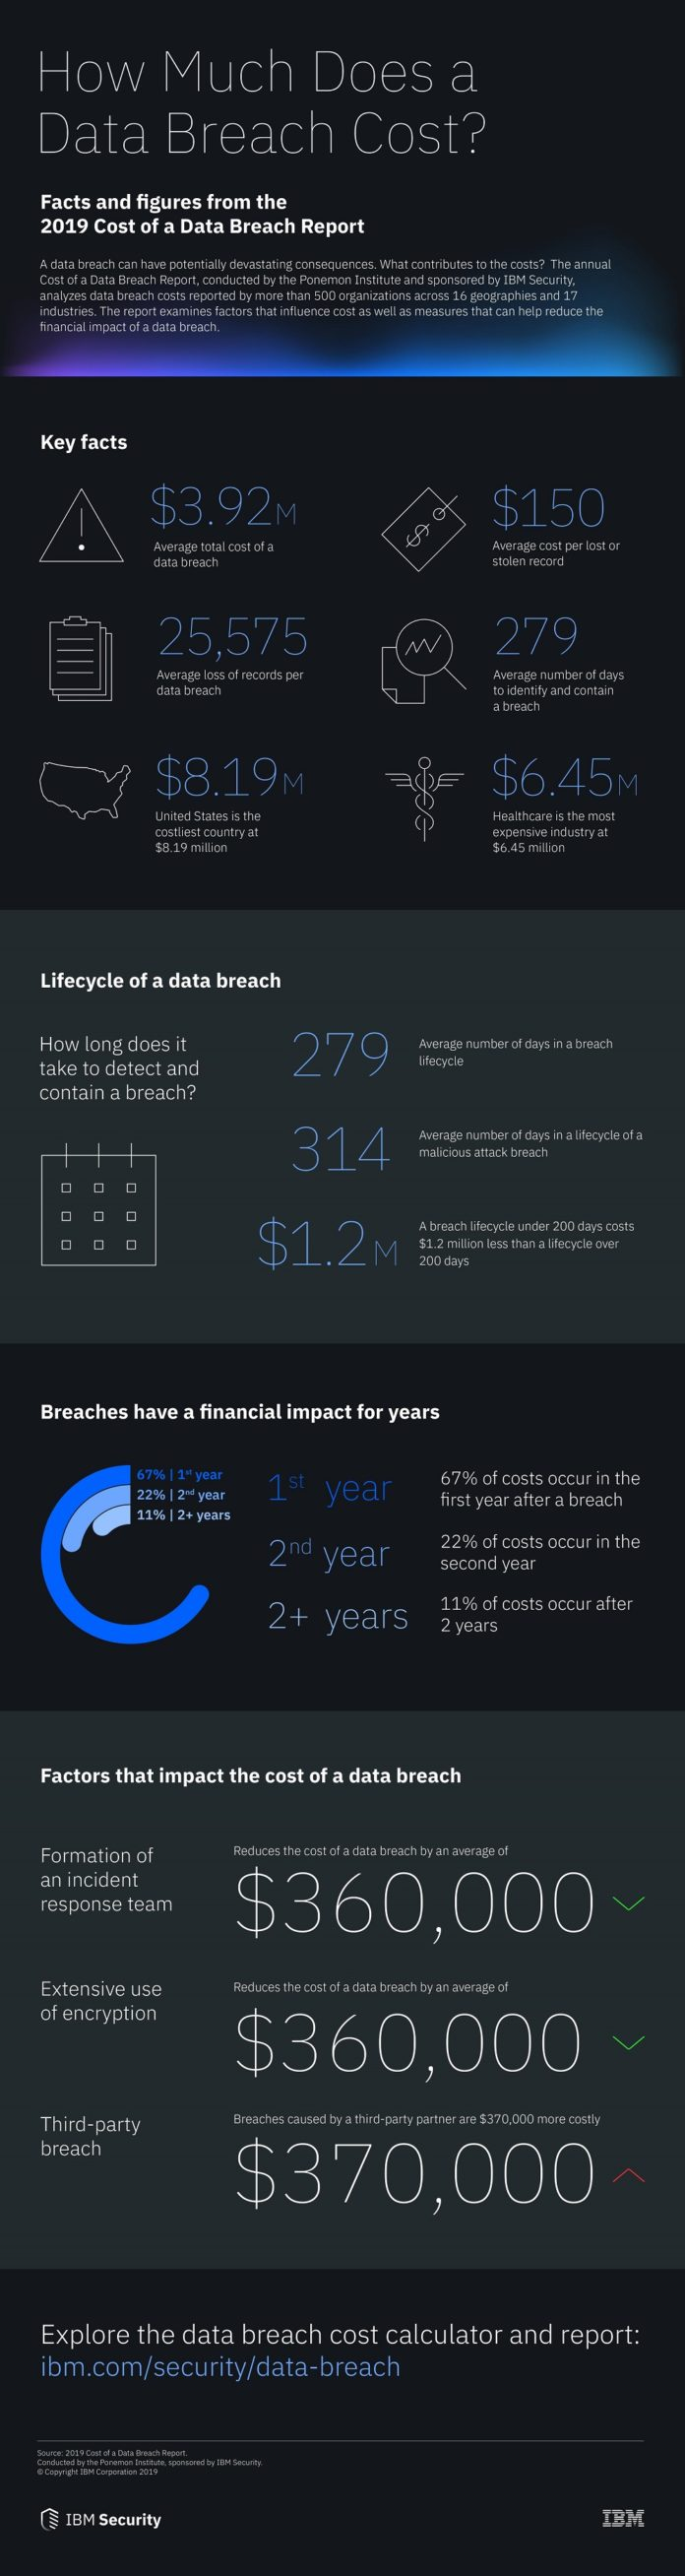 IBM's 2019 Cost of a Data Breach Report.